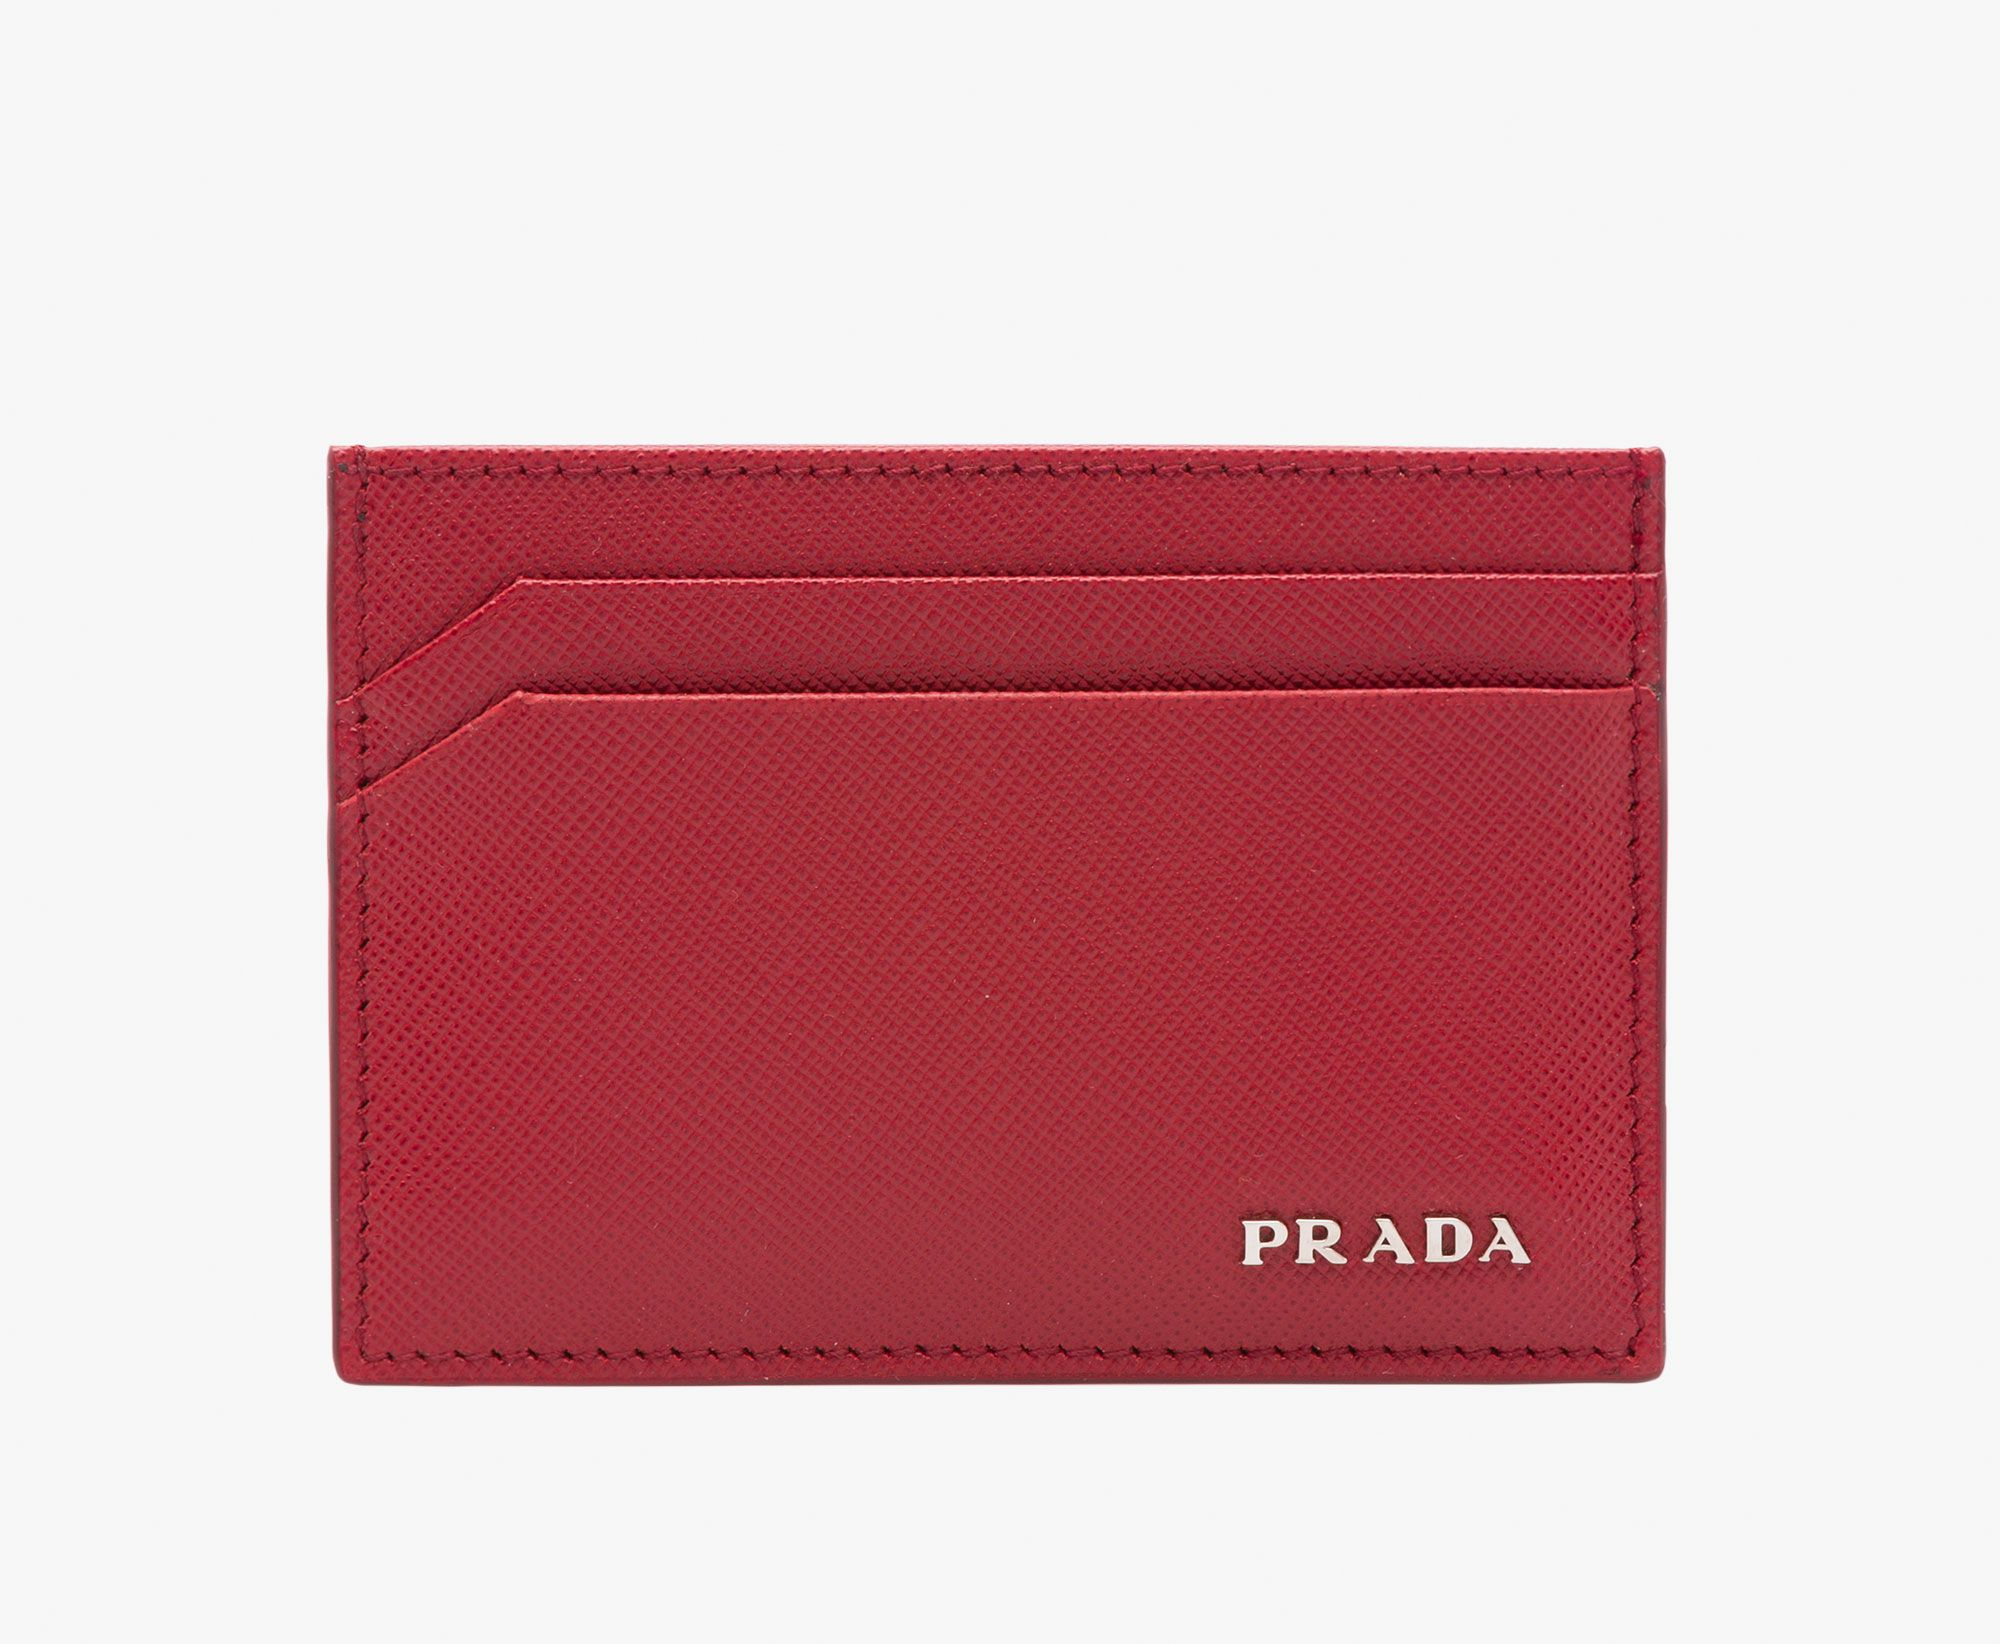 Prada Man Credit Card Holder Ruby Red MCQTDF - Commercial invoice template excel free download goyard online store